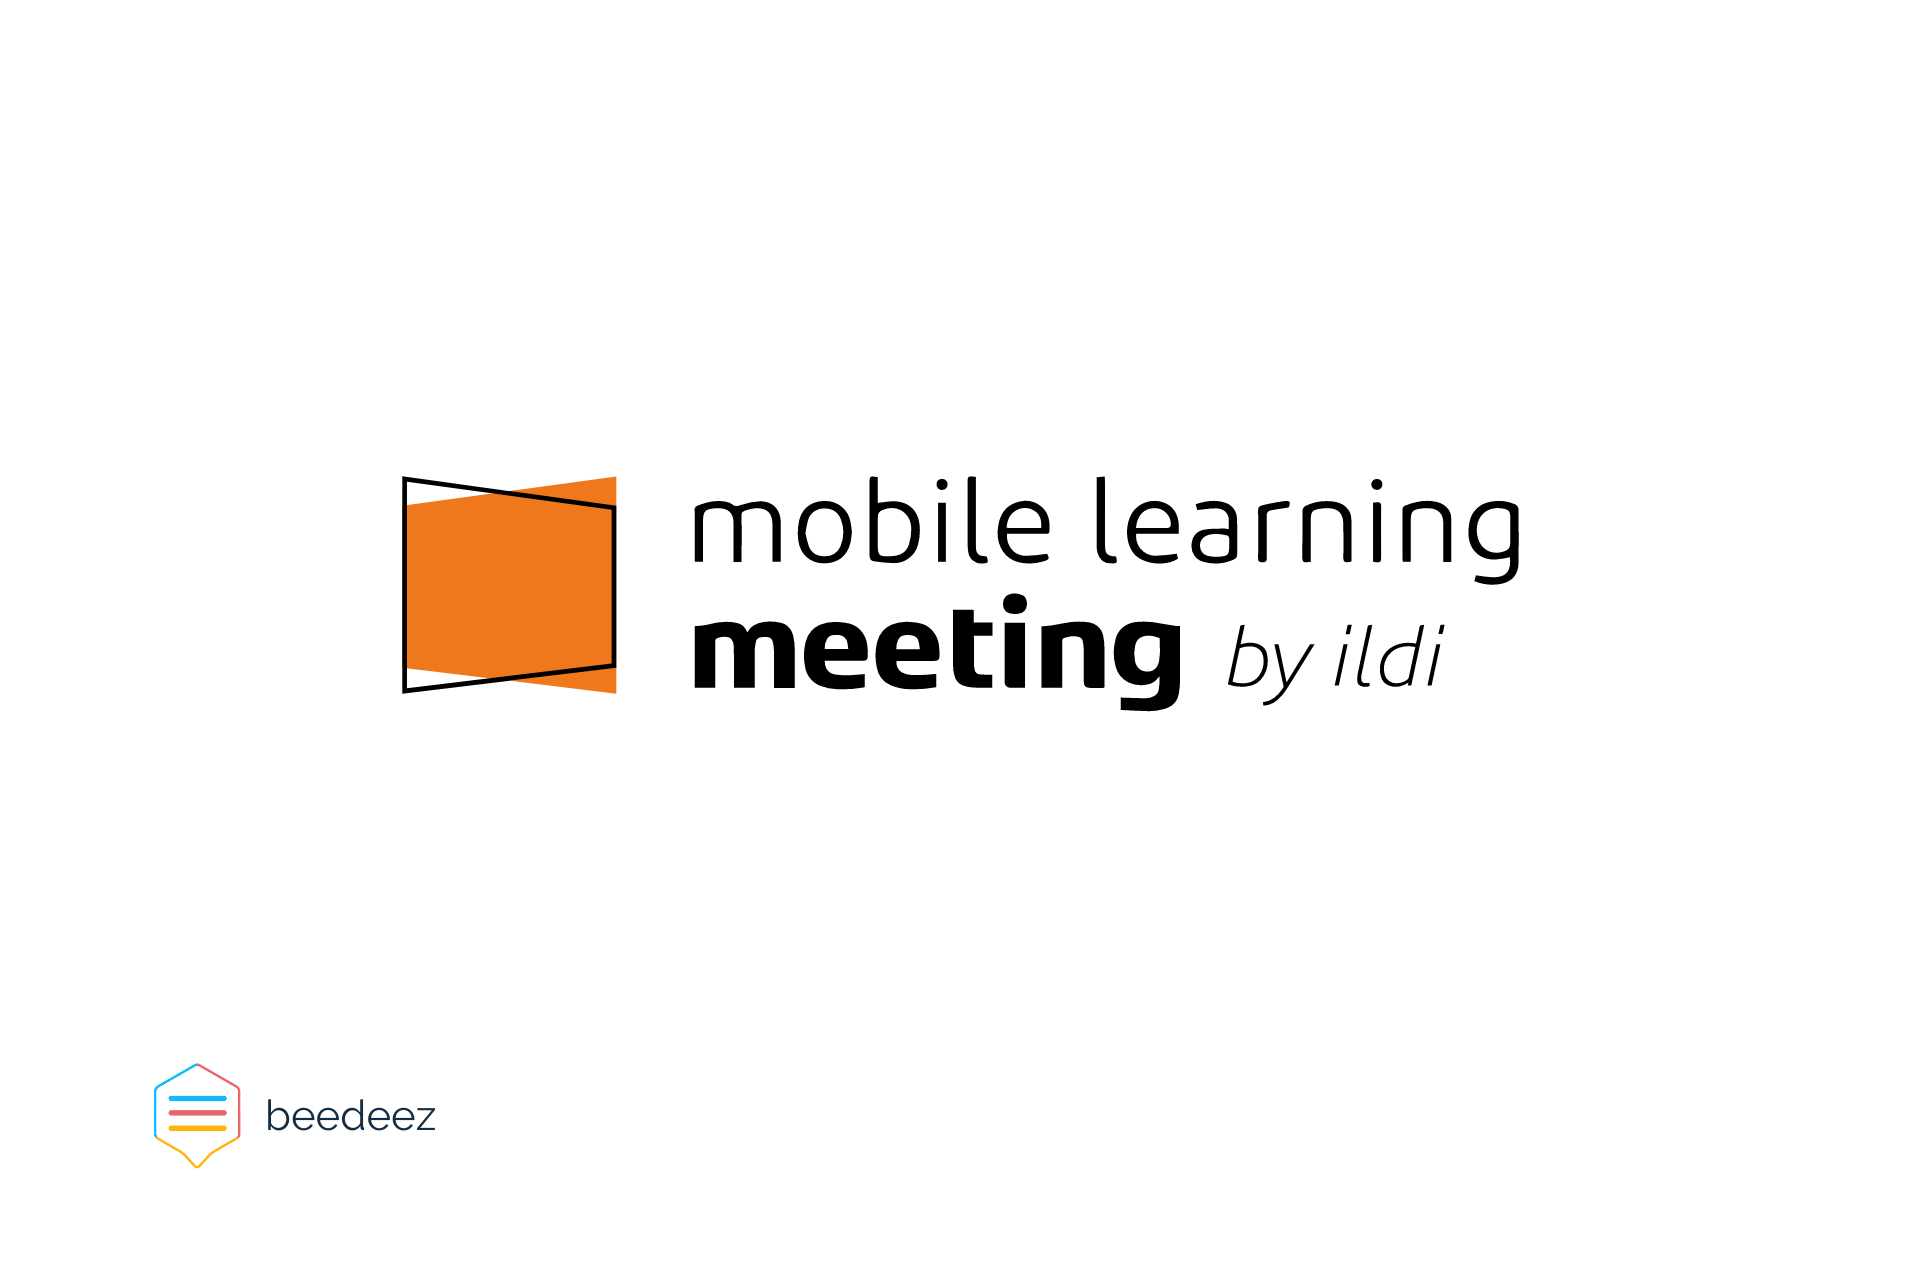 mobile learning meeting